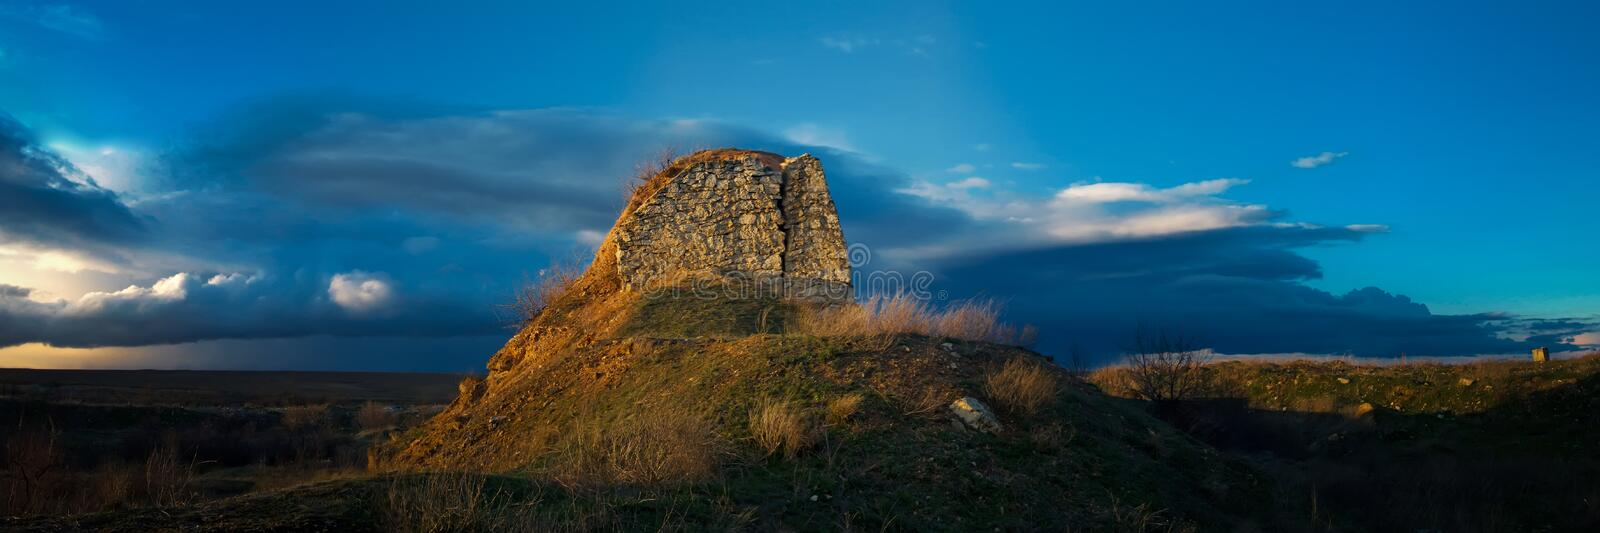 Old tower in front of an approaching storm royalty free stock image